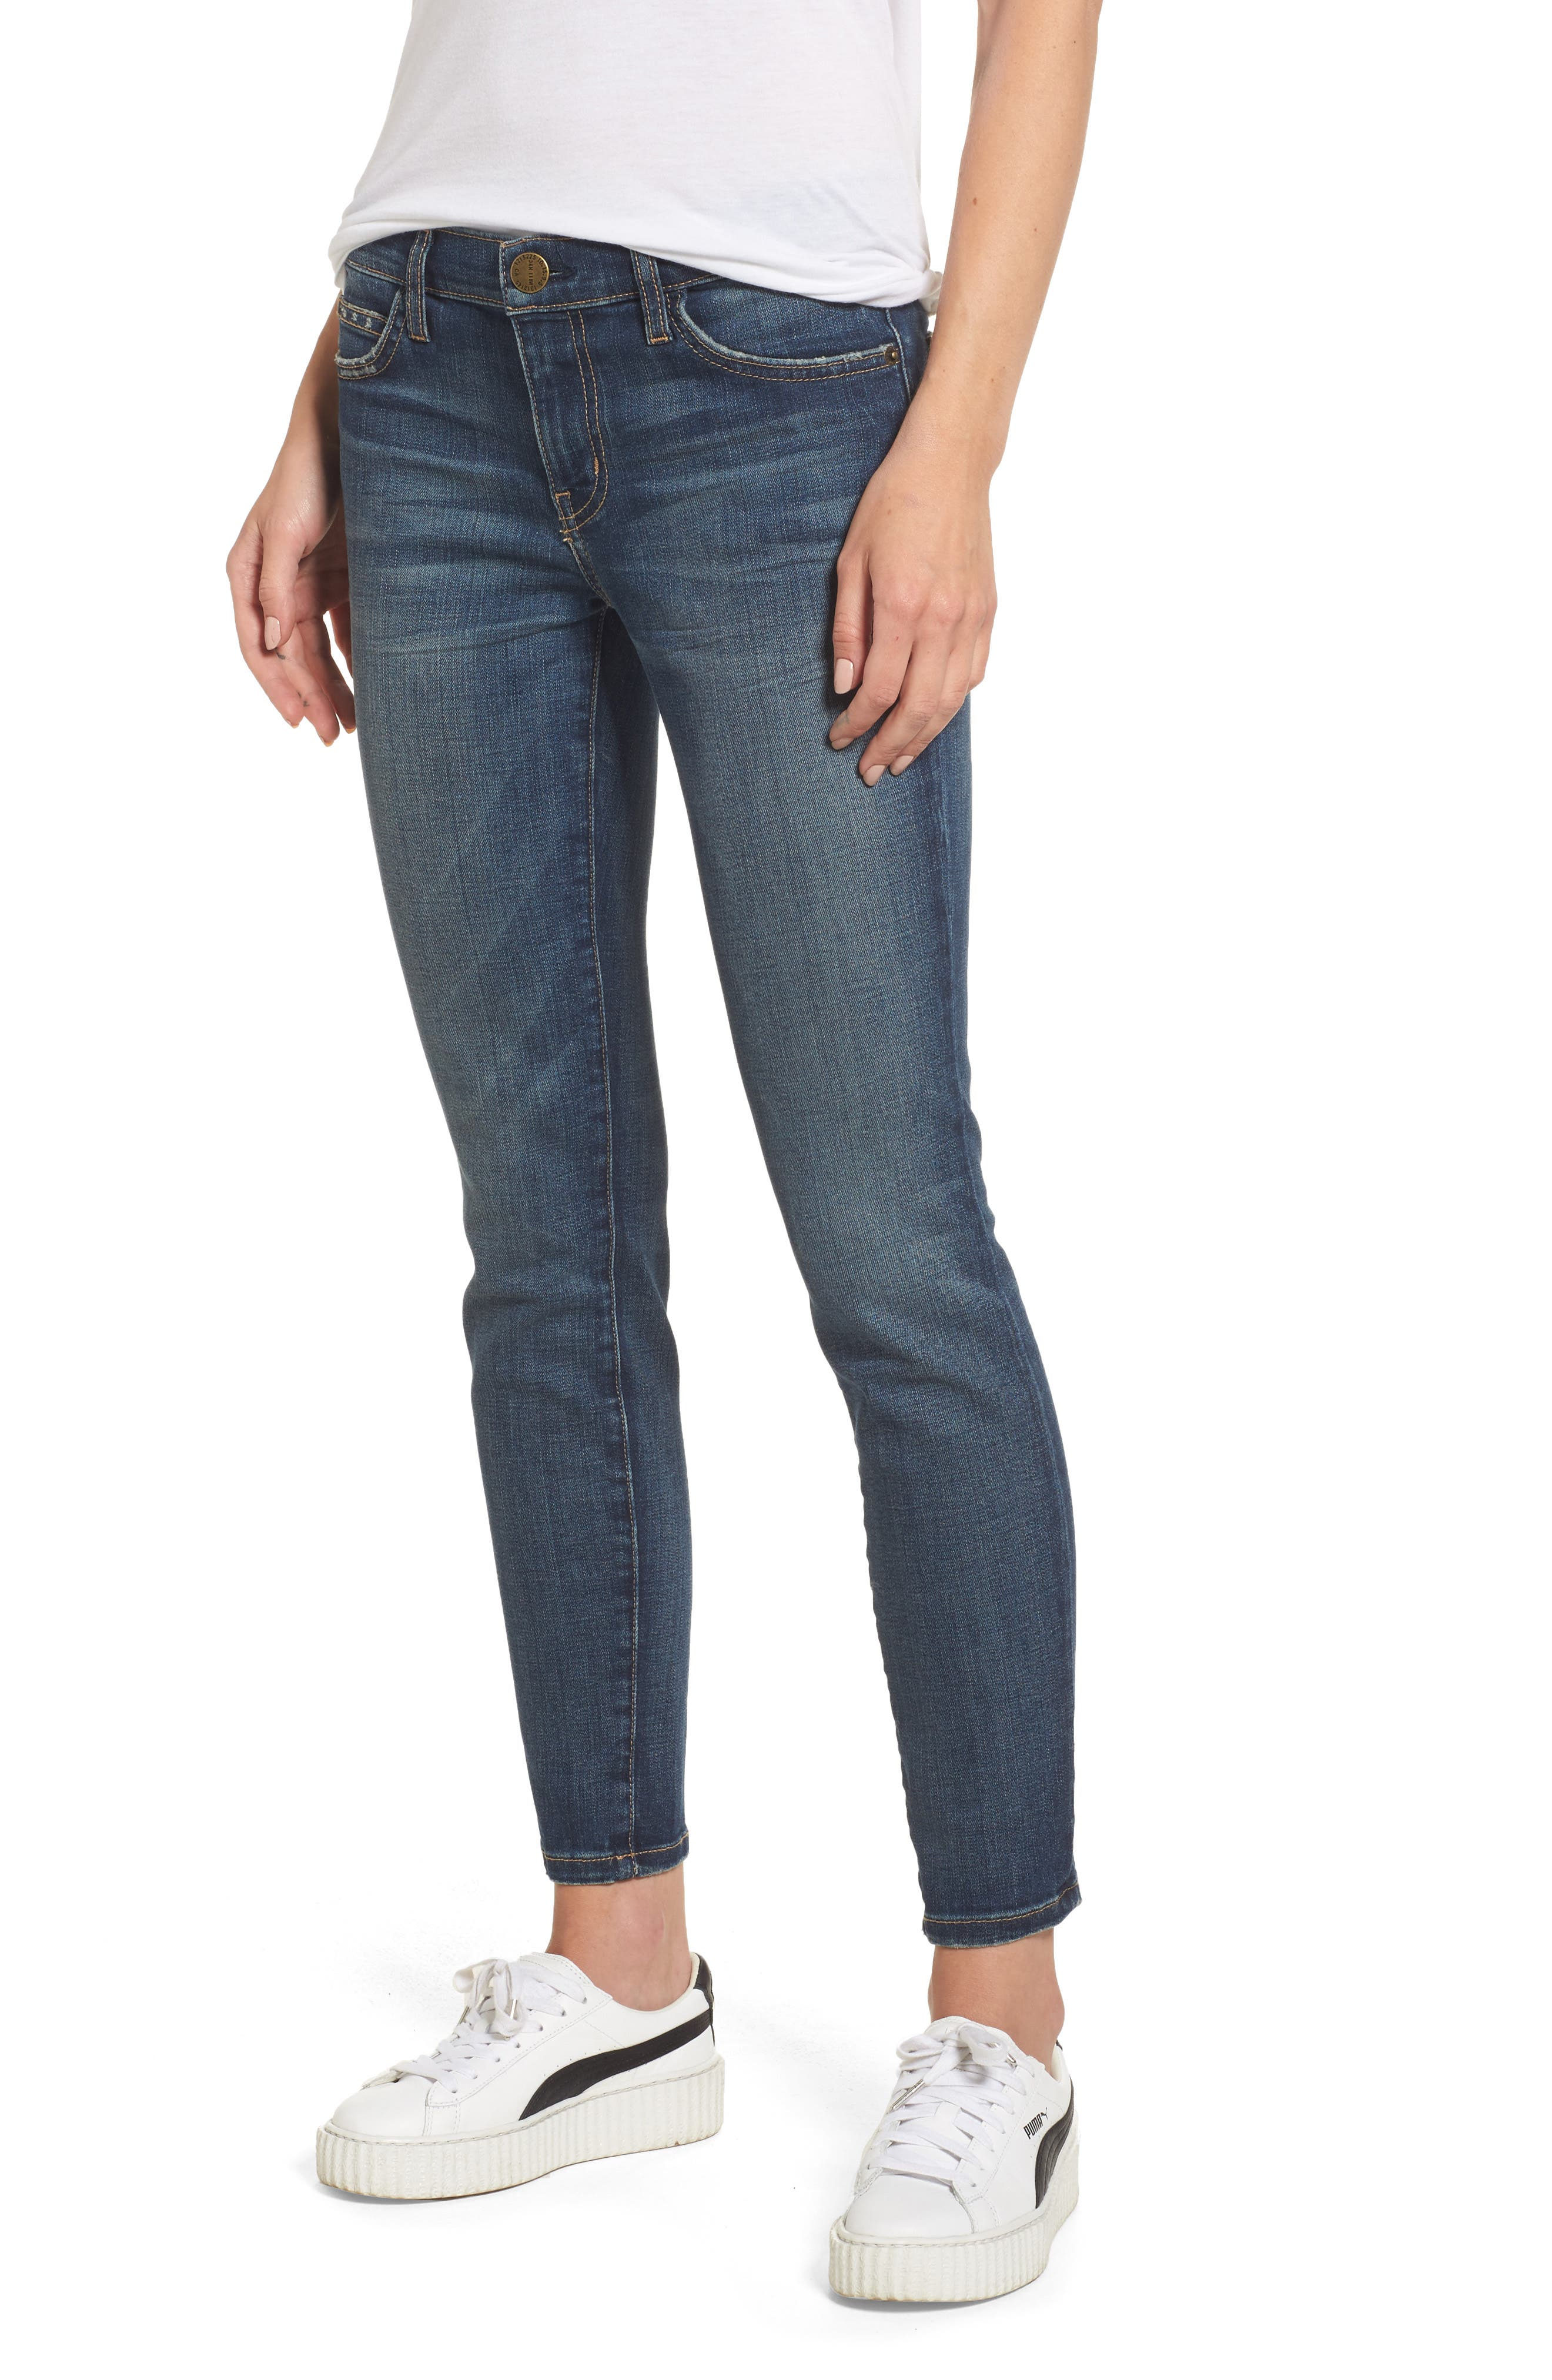 'The Stiletto' Stretch Jeans,                             Alternate thumbnail 2, color,                             477